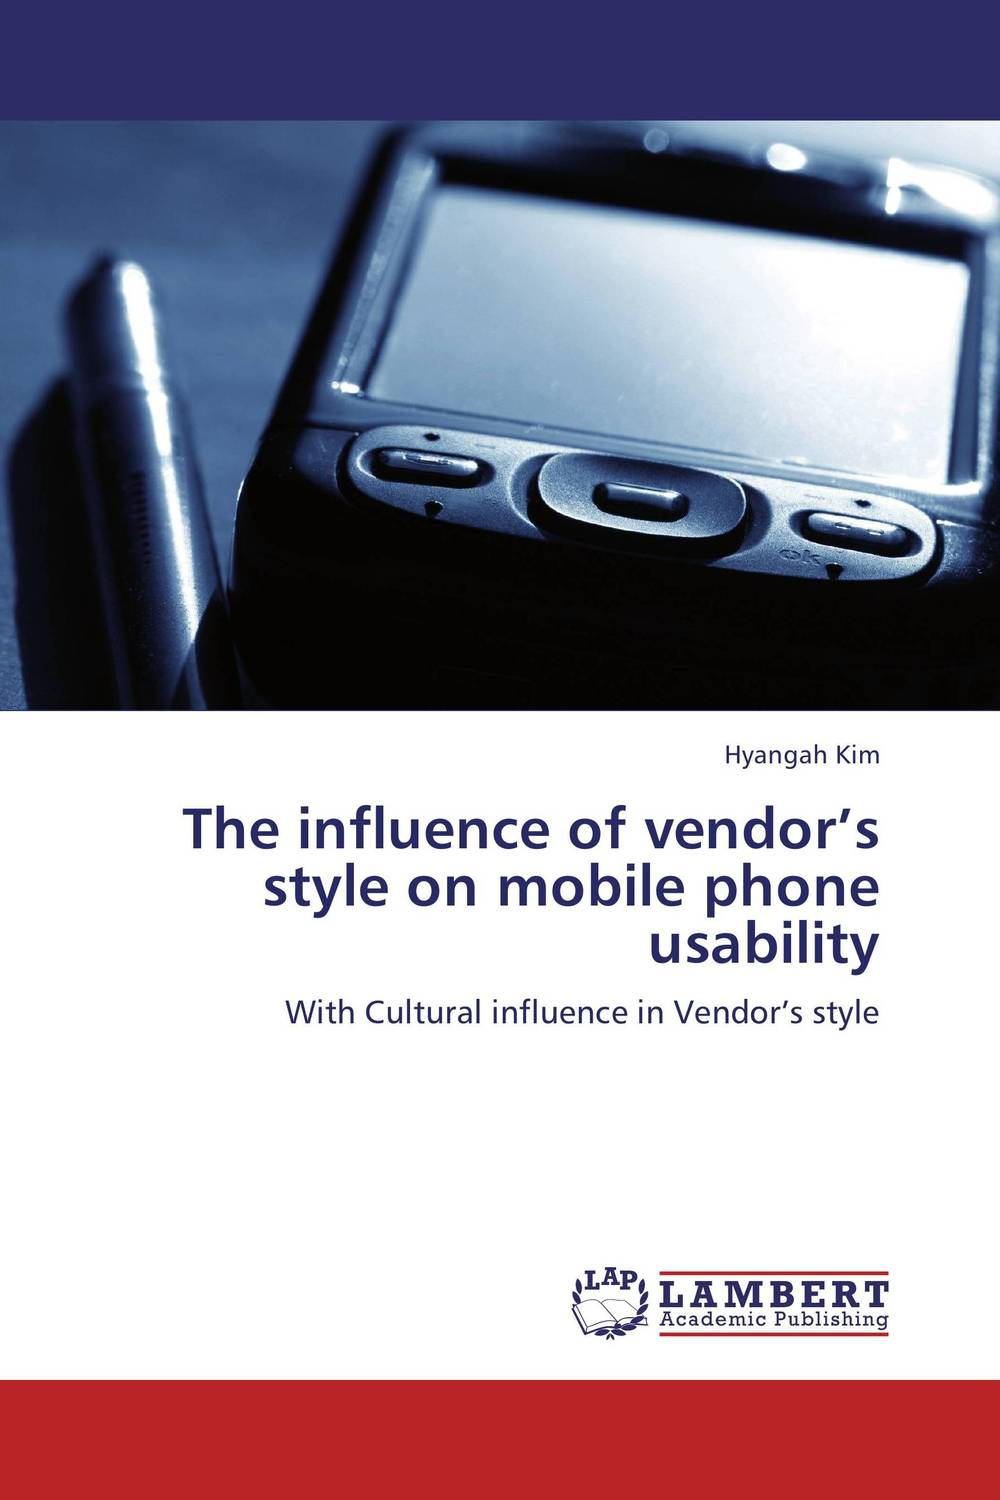 The influence of vendor's style on mobile phone usability